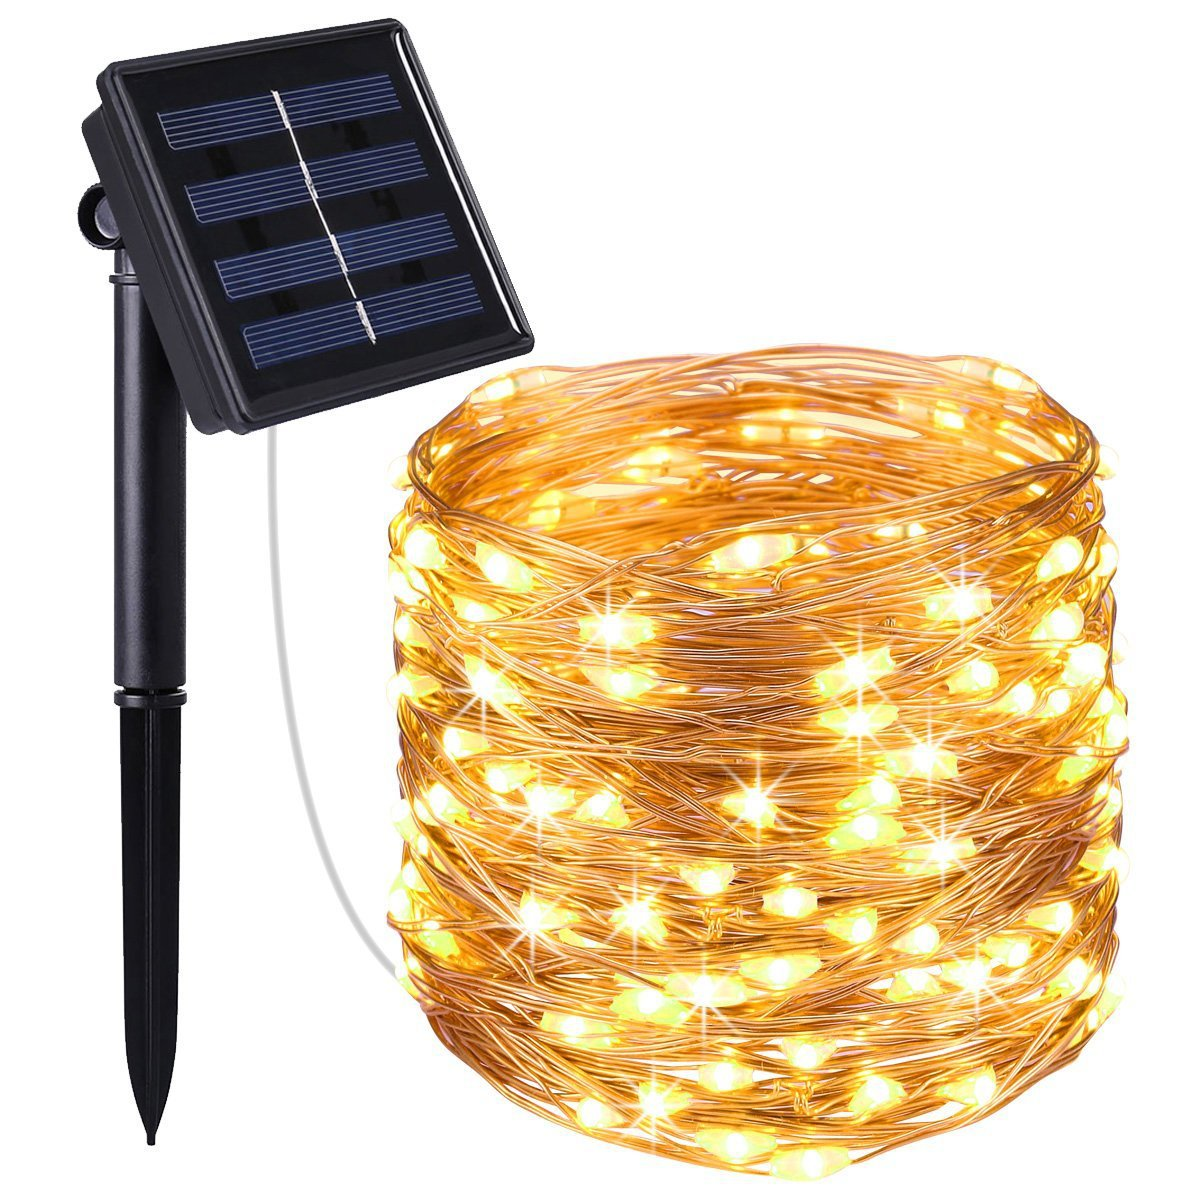 LED Fairy Light 5/10/20/30M Solar String Light Chain Garland Copper Wire Backyard Outdoor Christmas Halloween Decoration